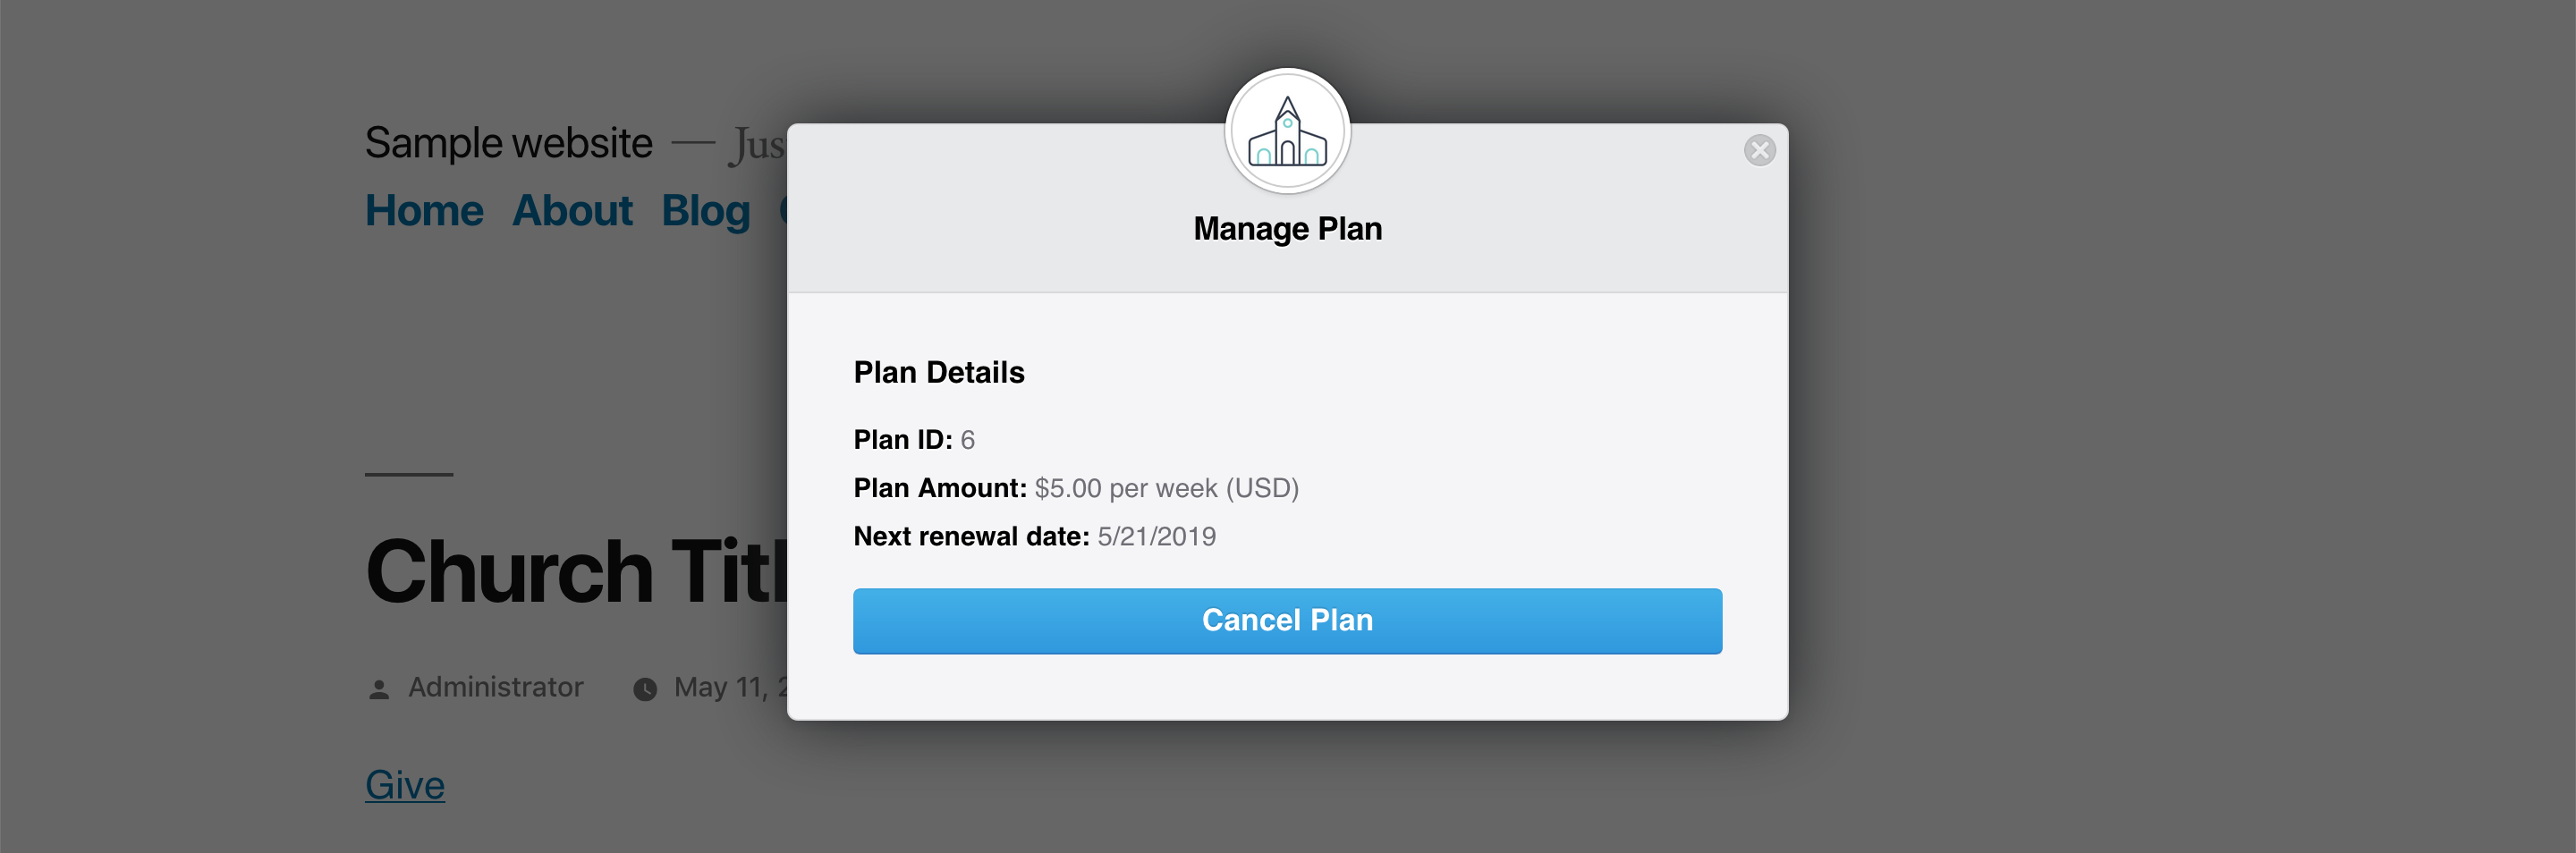 The single-details for a plan, with the option to cancel.